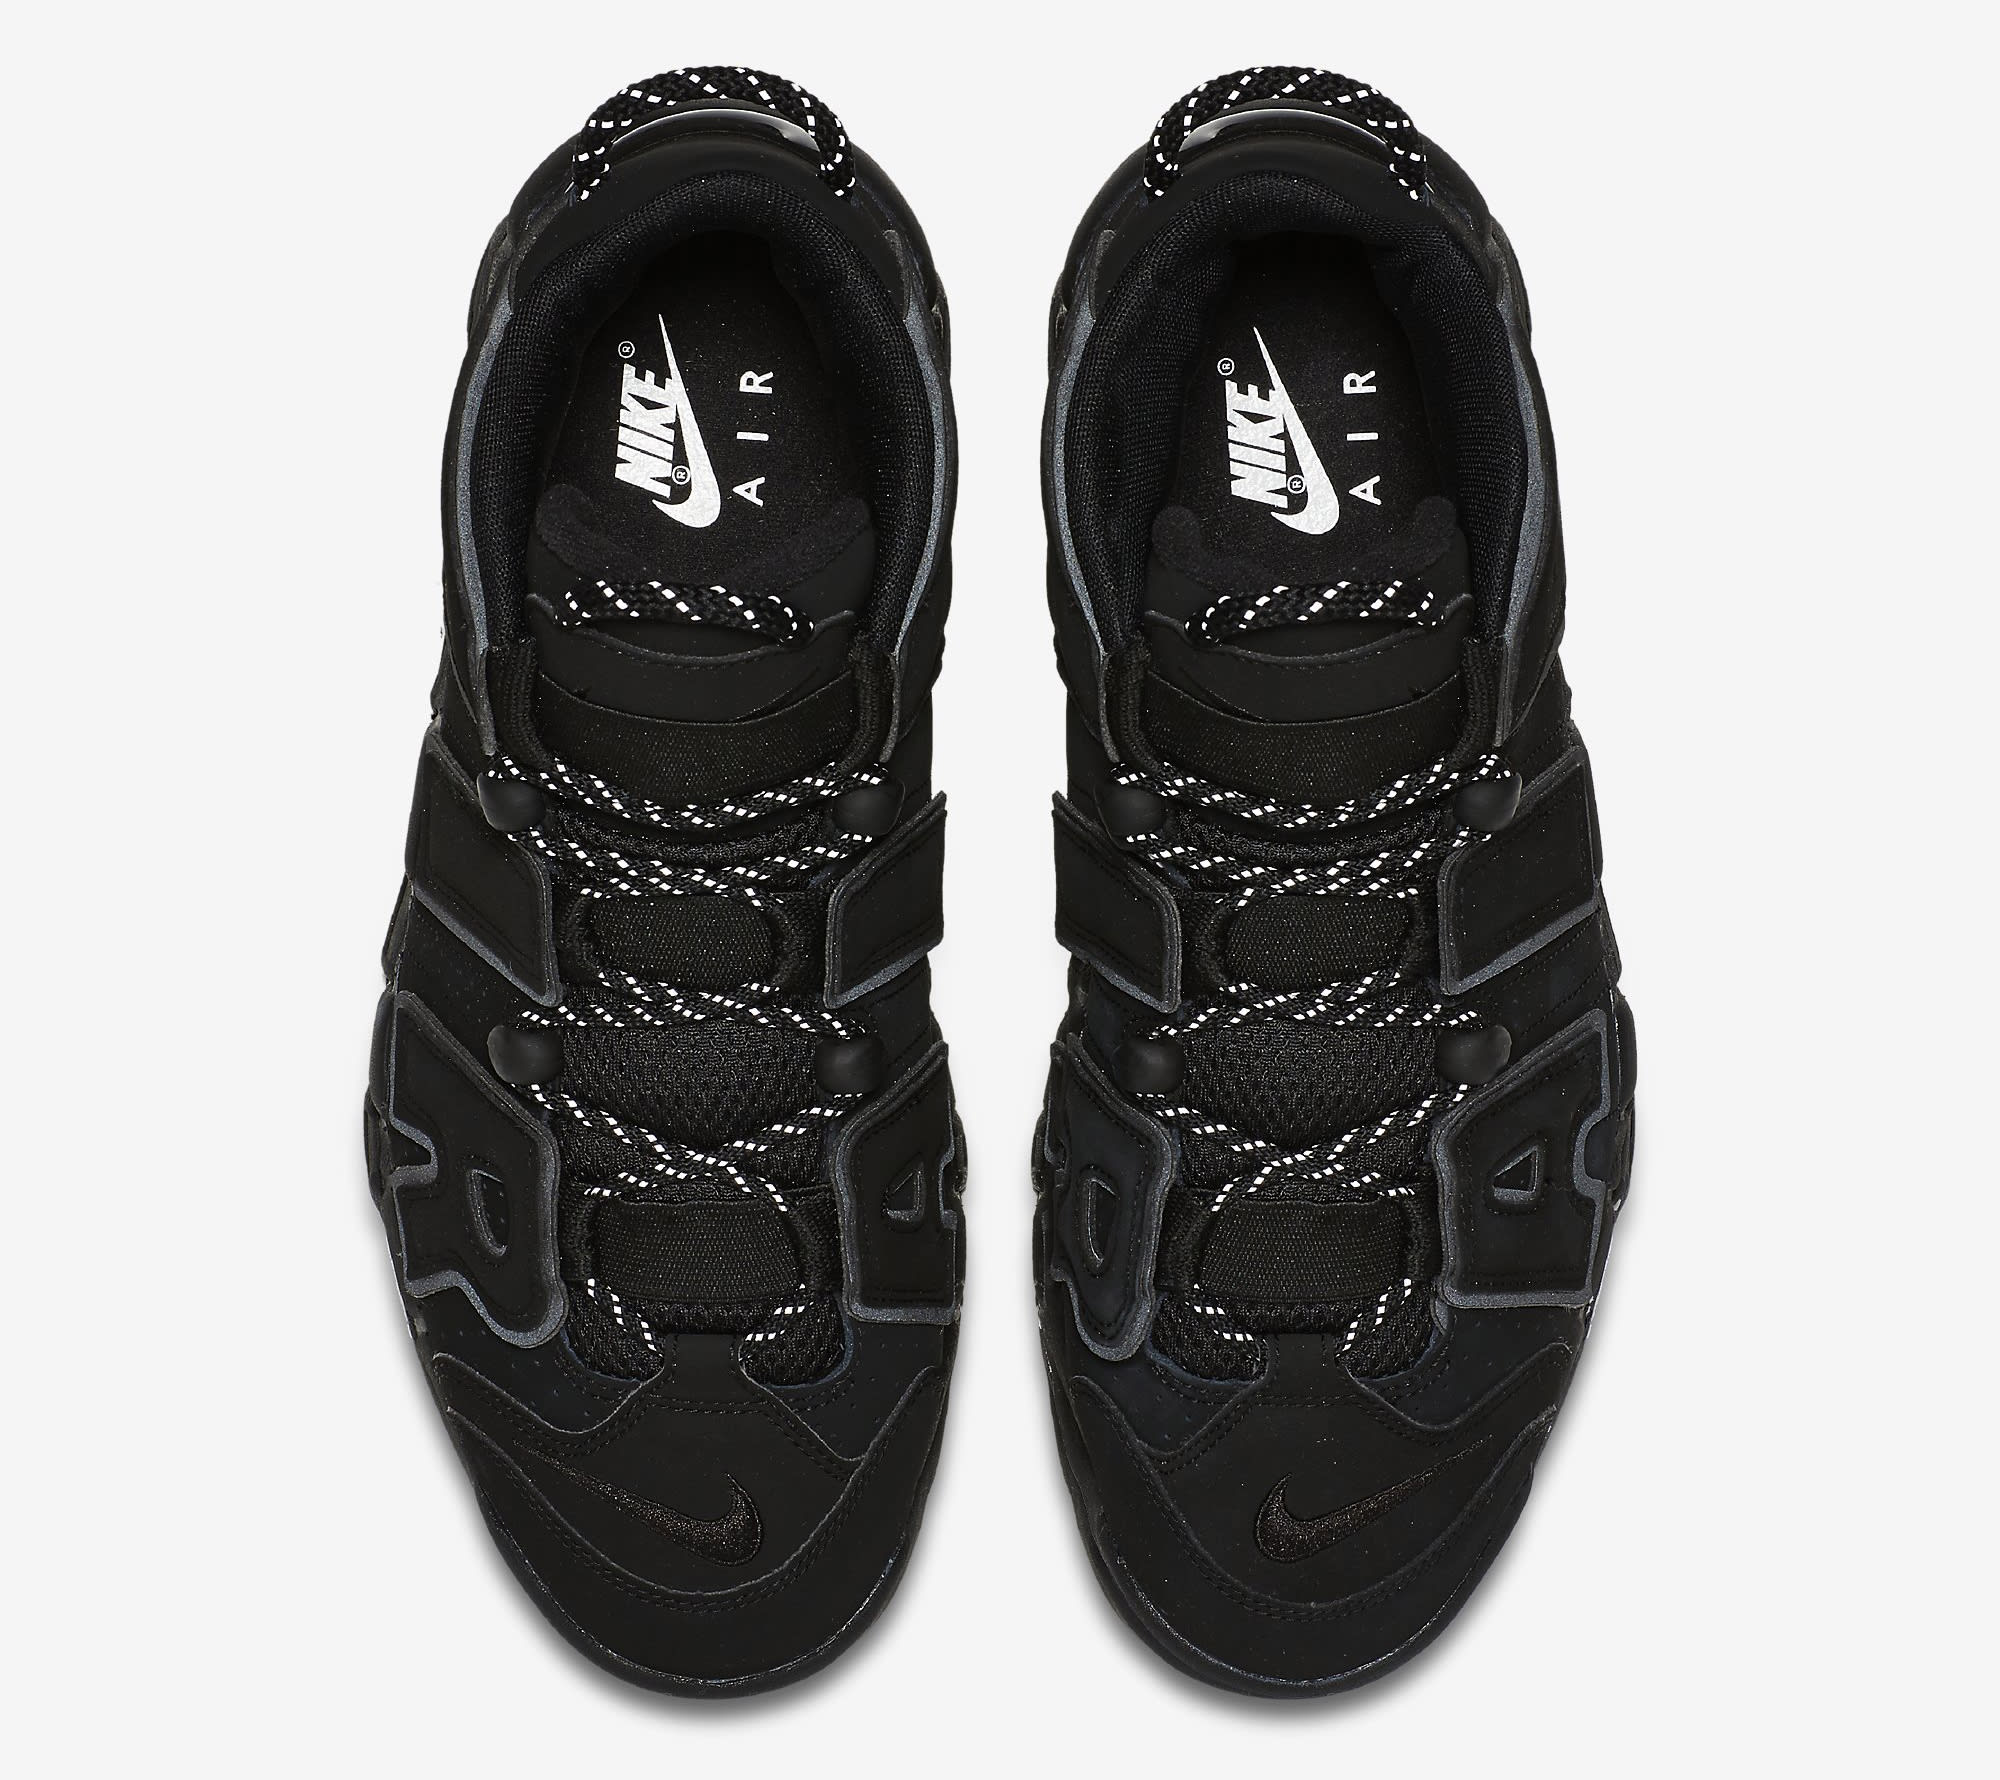 Nike Air More Uptempo Black Reflective 414962-004 Top